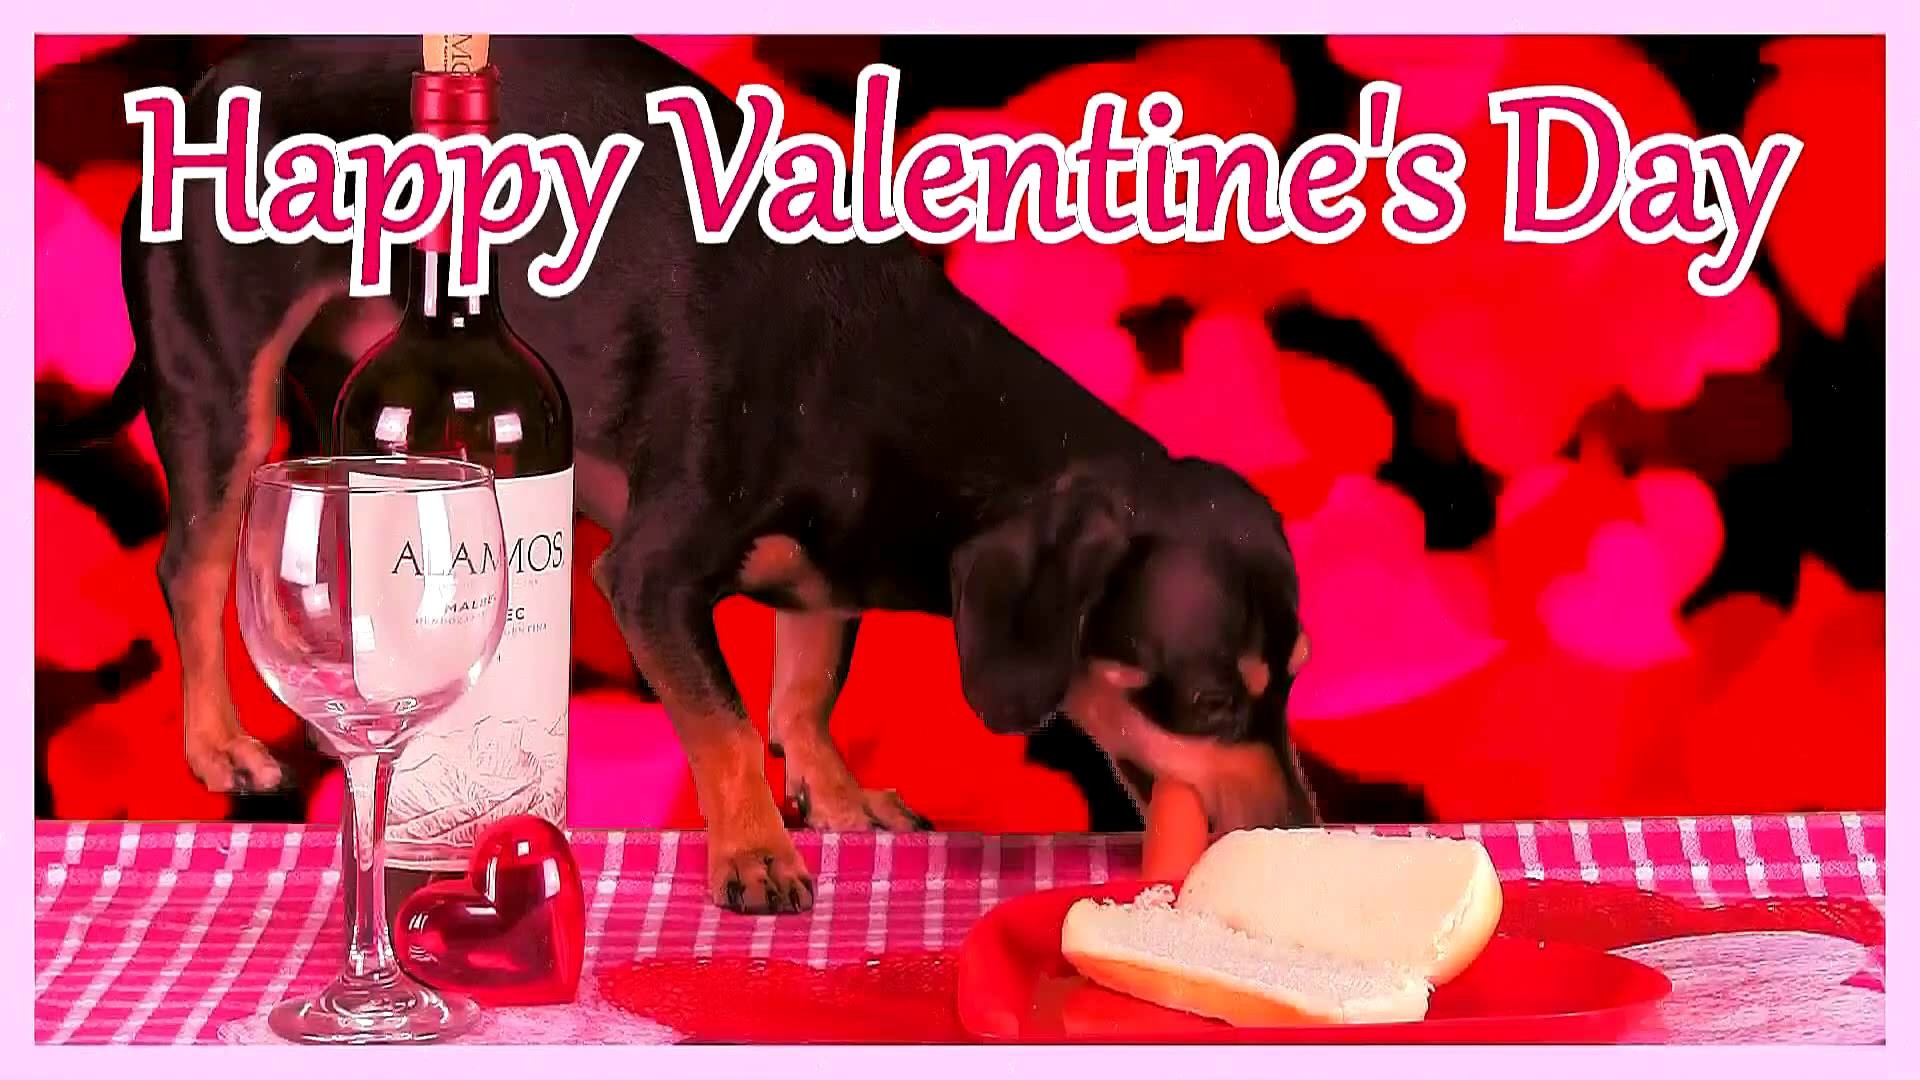 Happy Valentine's Day! Cute Puppy Eats a Hot Dog!